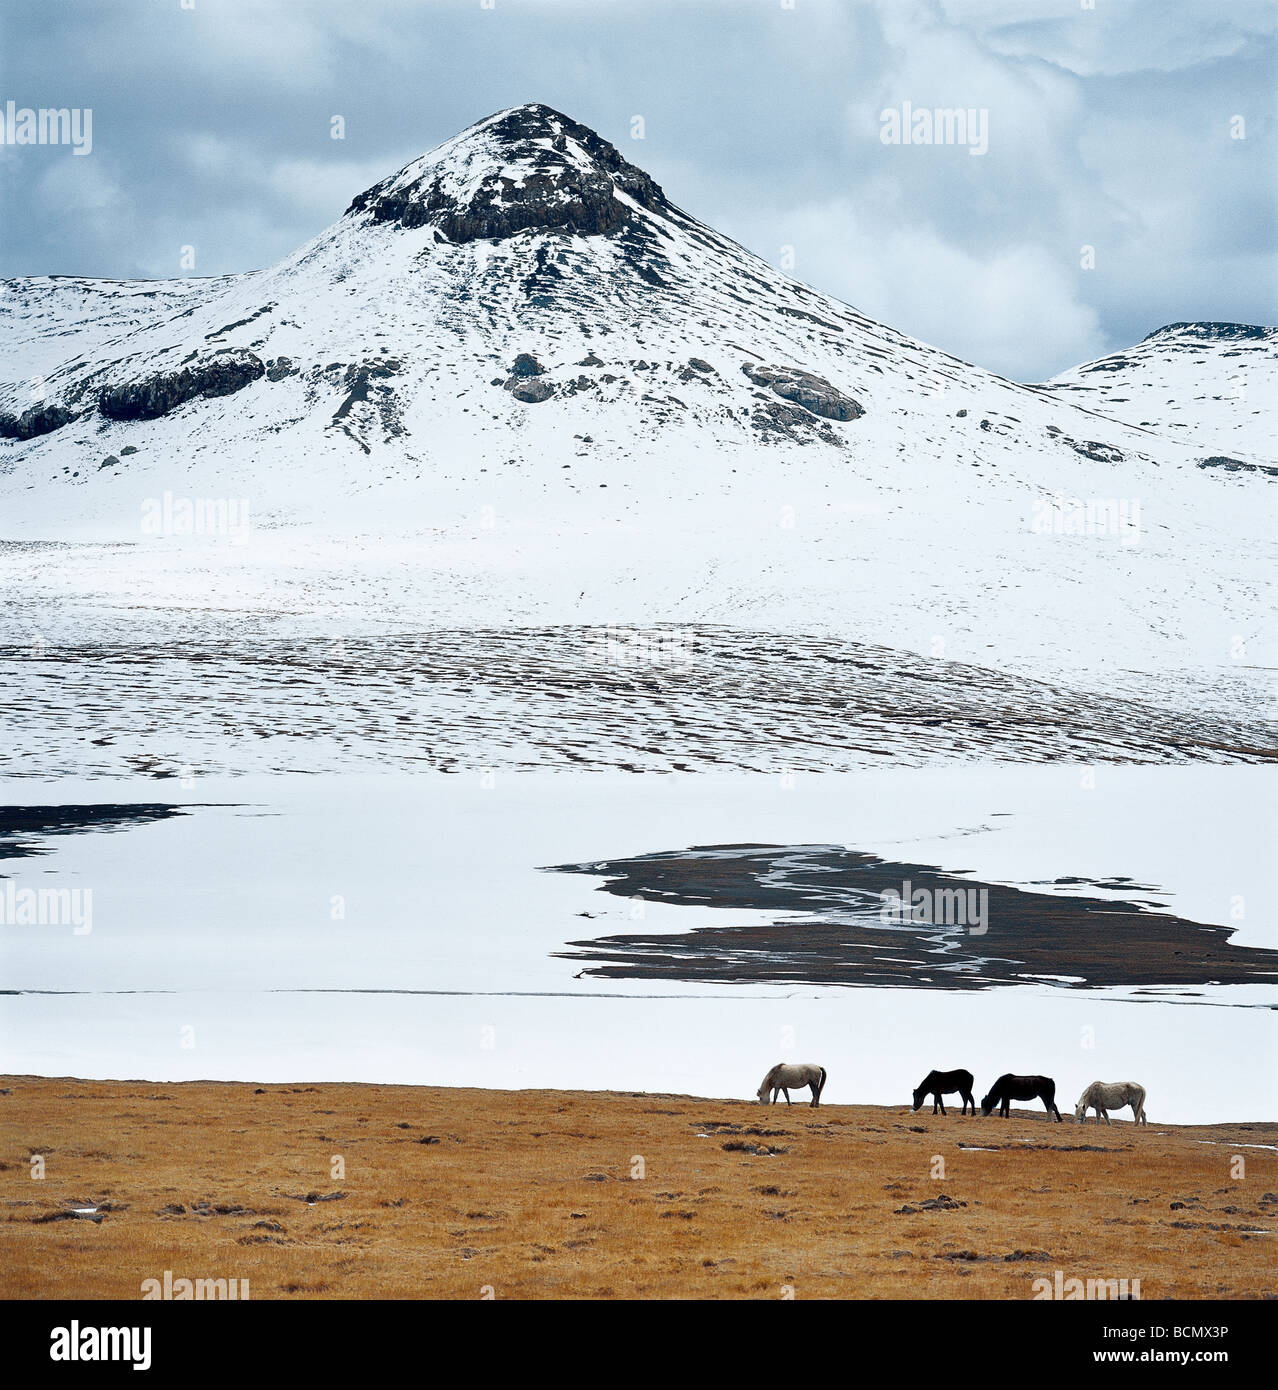 Amdo Grassland in winter, Amdo County, Tibet, China - Stock Image